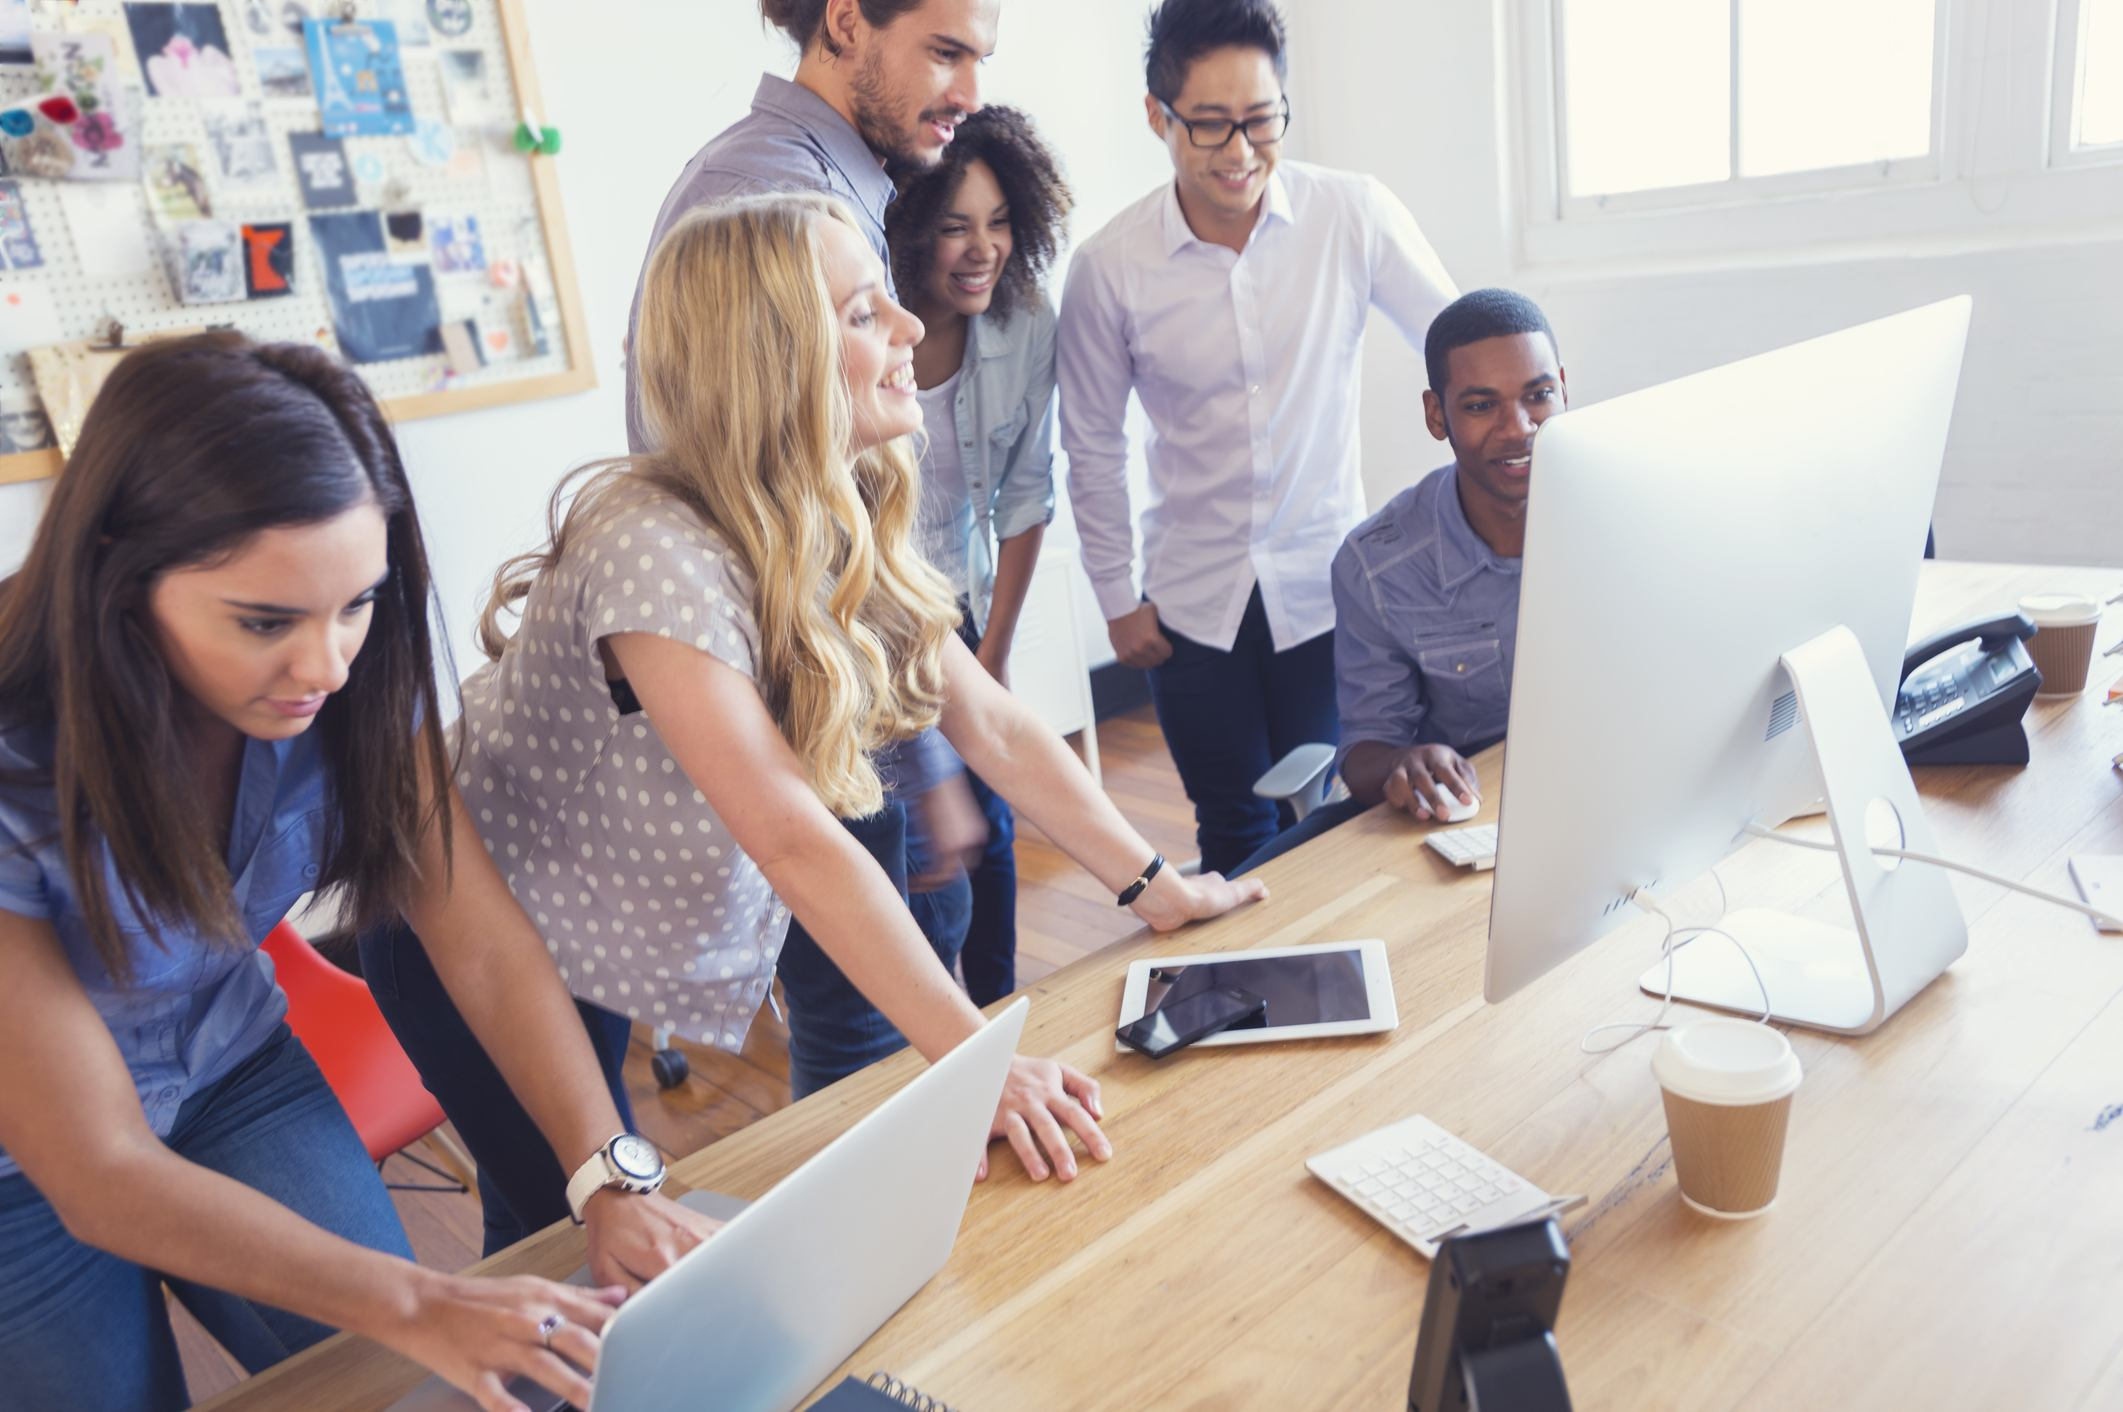 Glassdoor Announces Awards Criteria for Best Places to Work 2019 Glassdoor for Employers